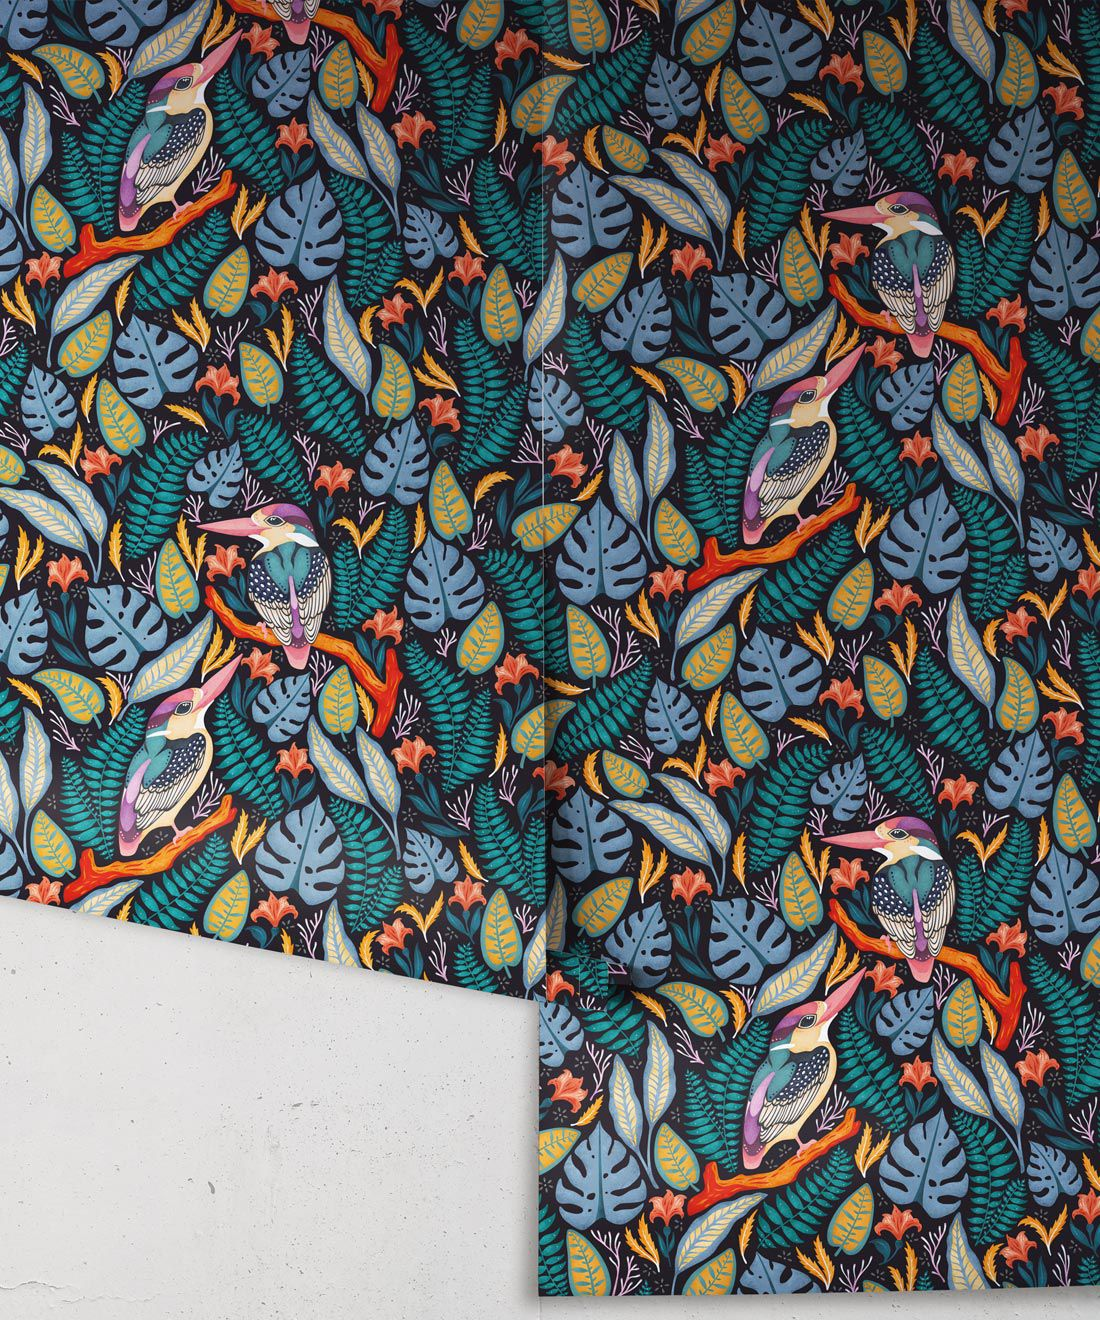 Kingfisher Wallpaper • Bird Wallpaper • Assorted Color Wallpaper Rolls